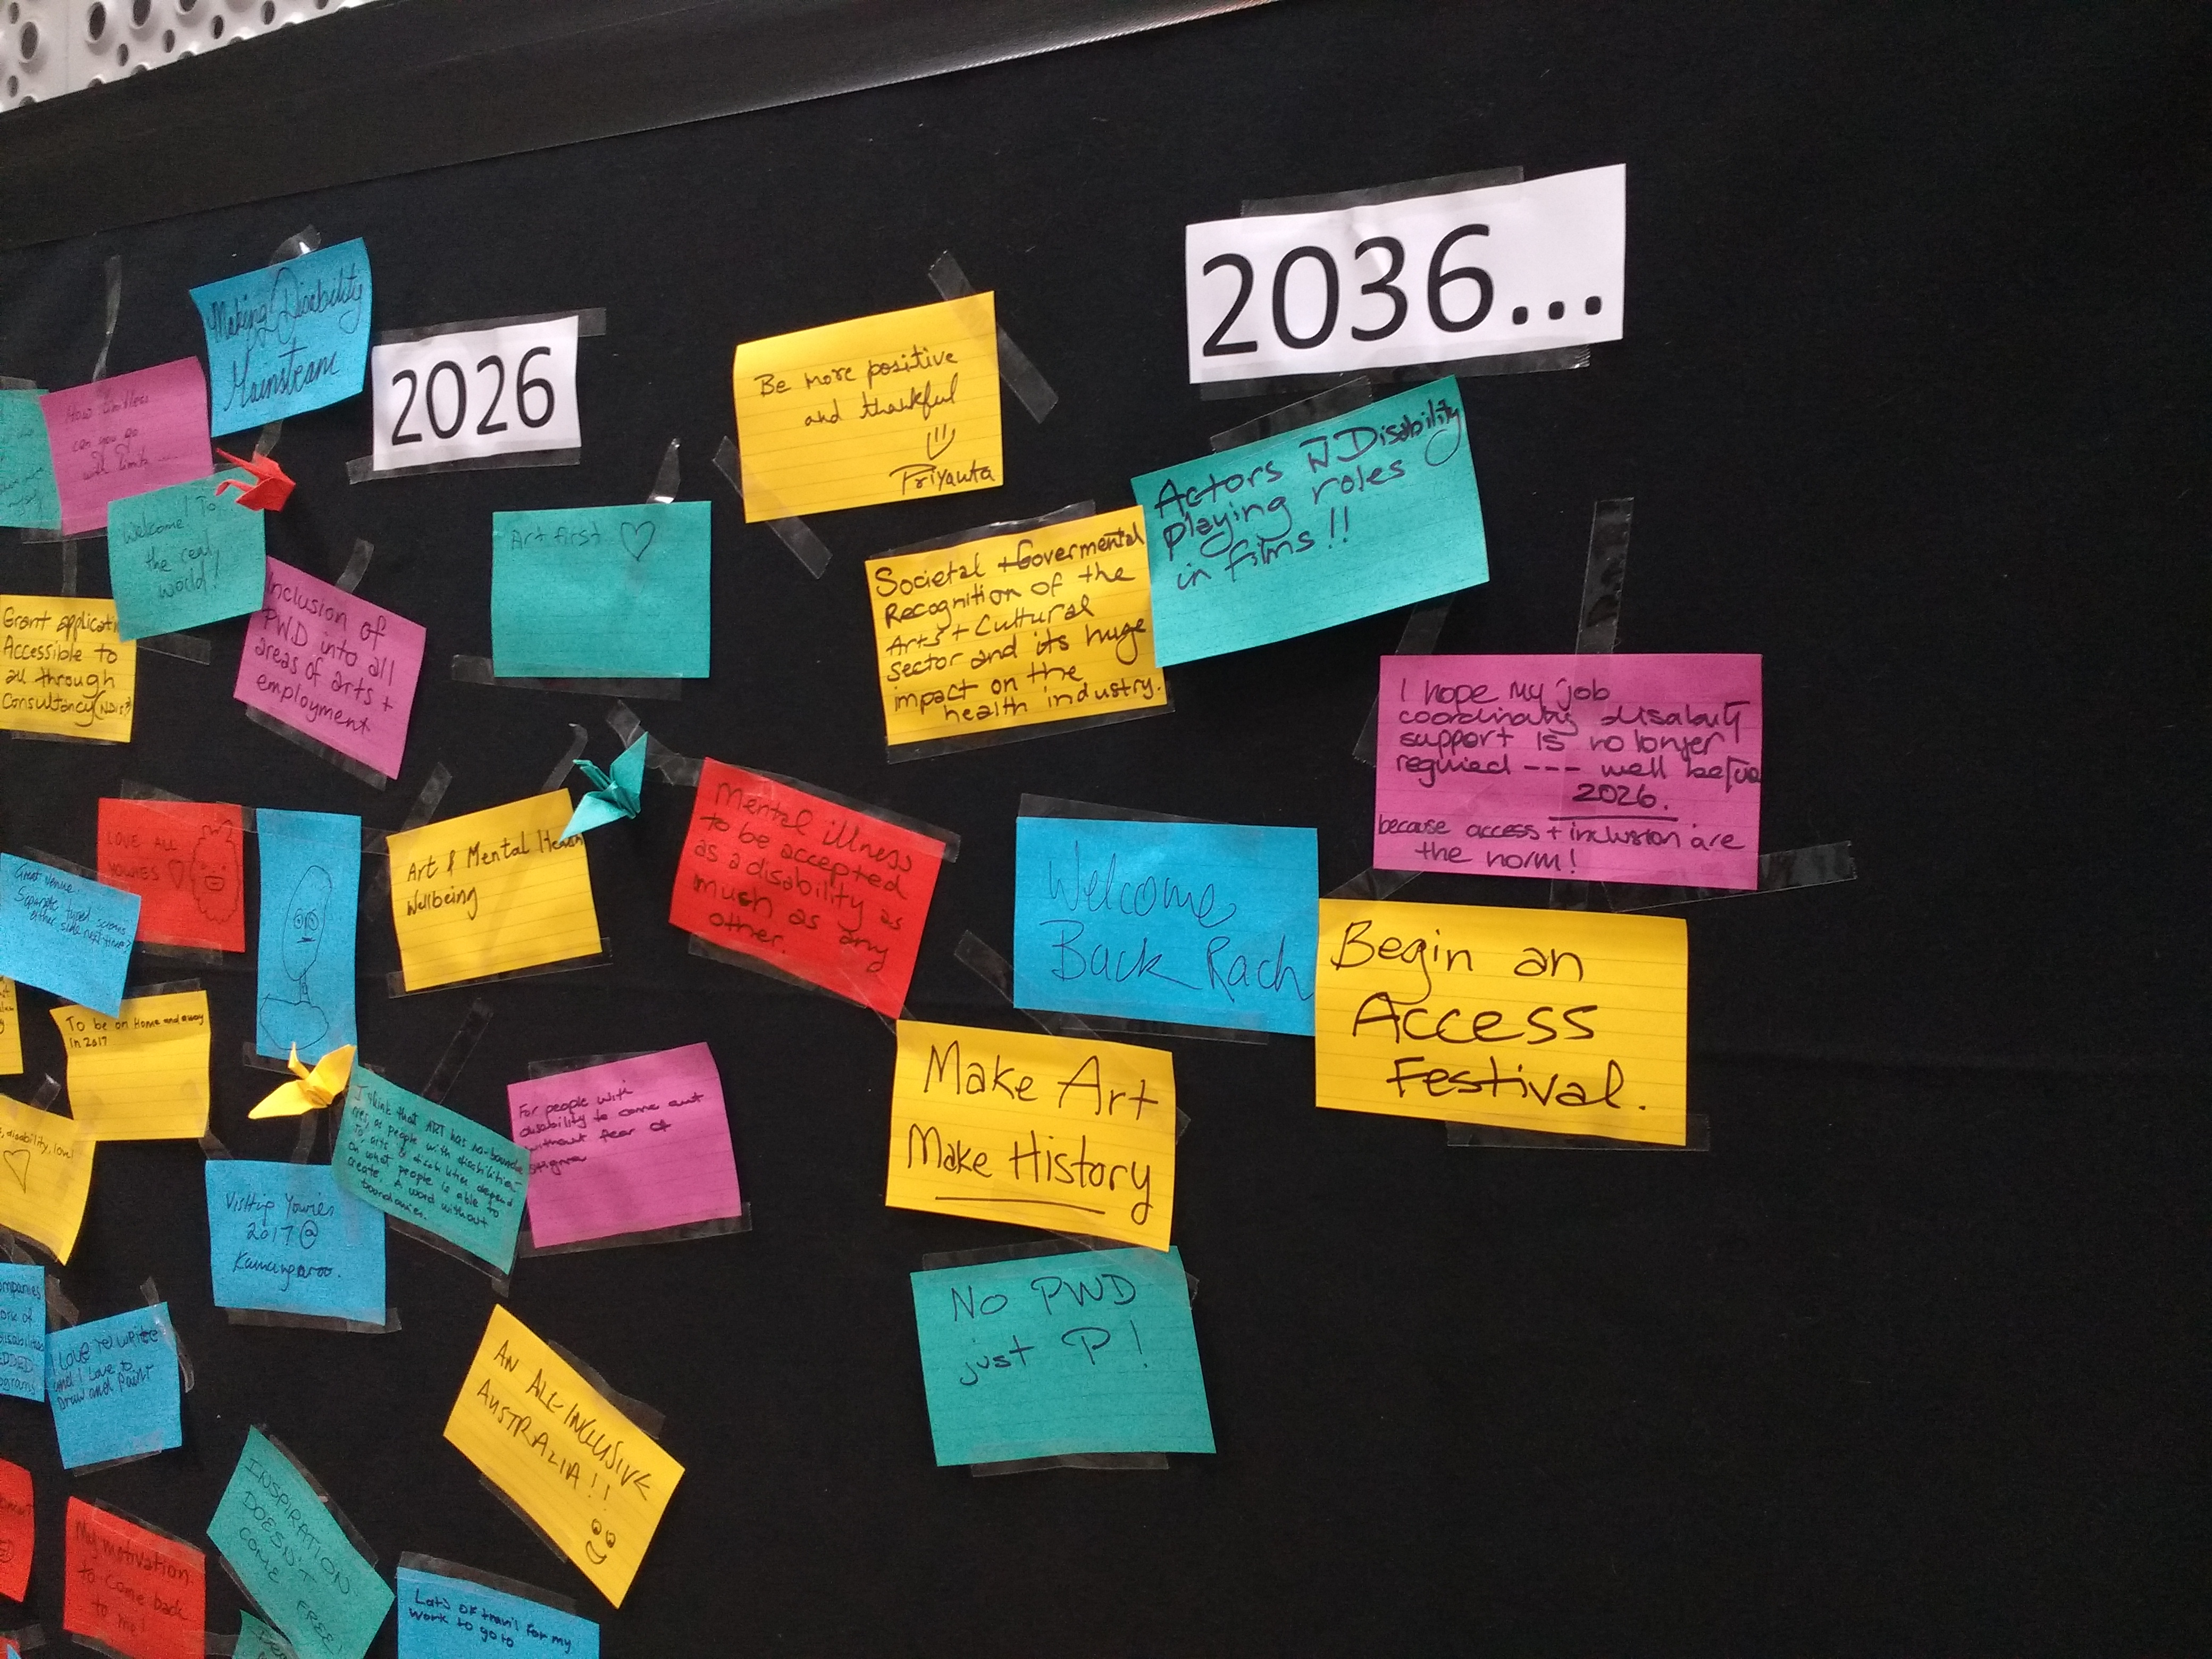 Louise Kate Anderson_AArts 2016 Conf Legacy Wall (15)